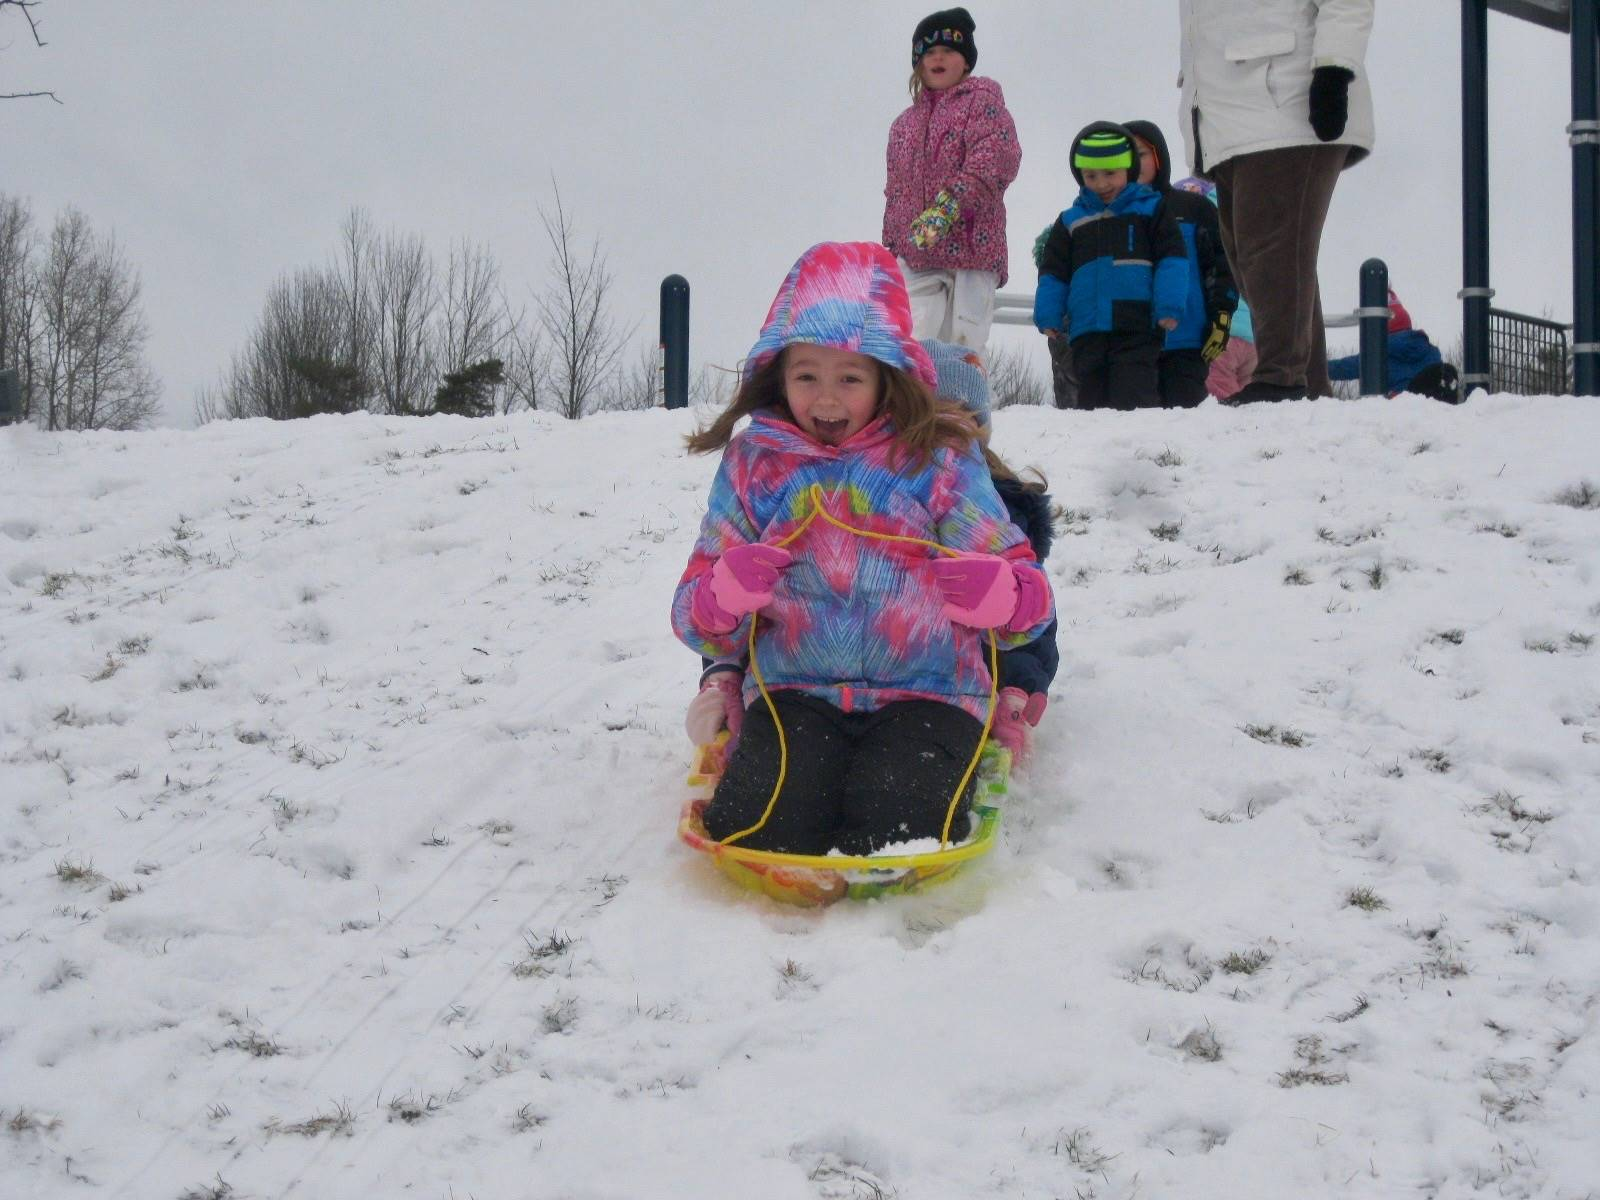 A student sliding down the hill.